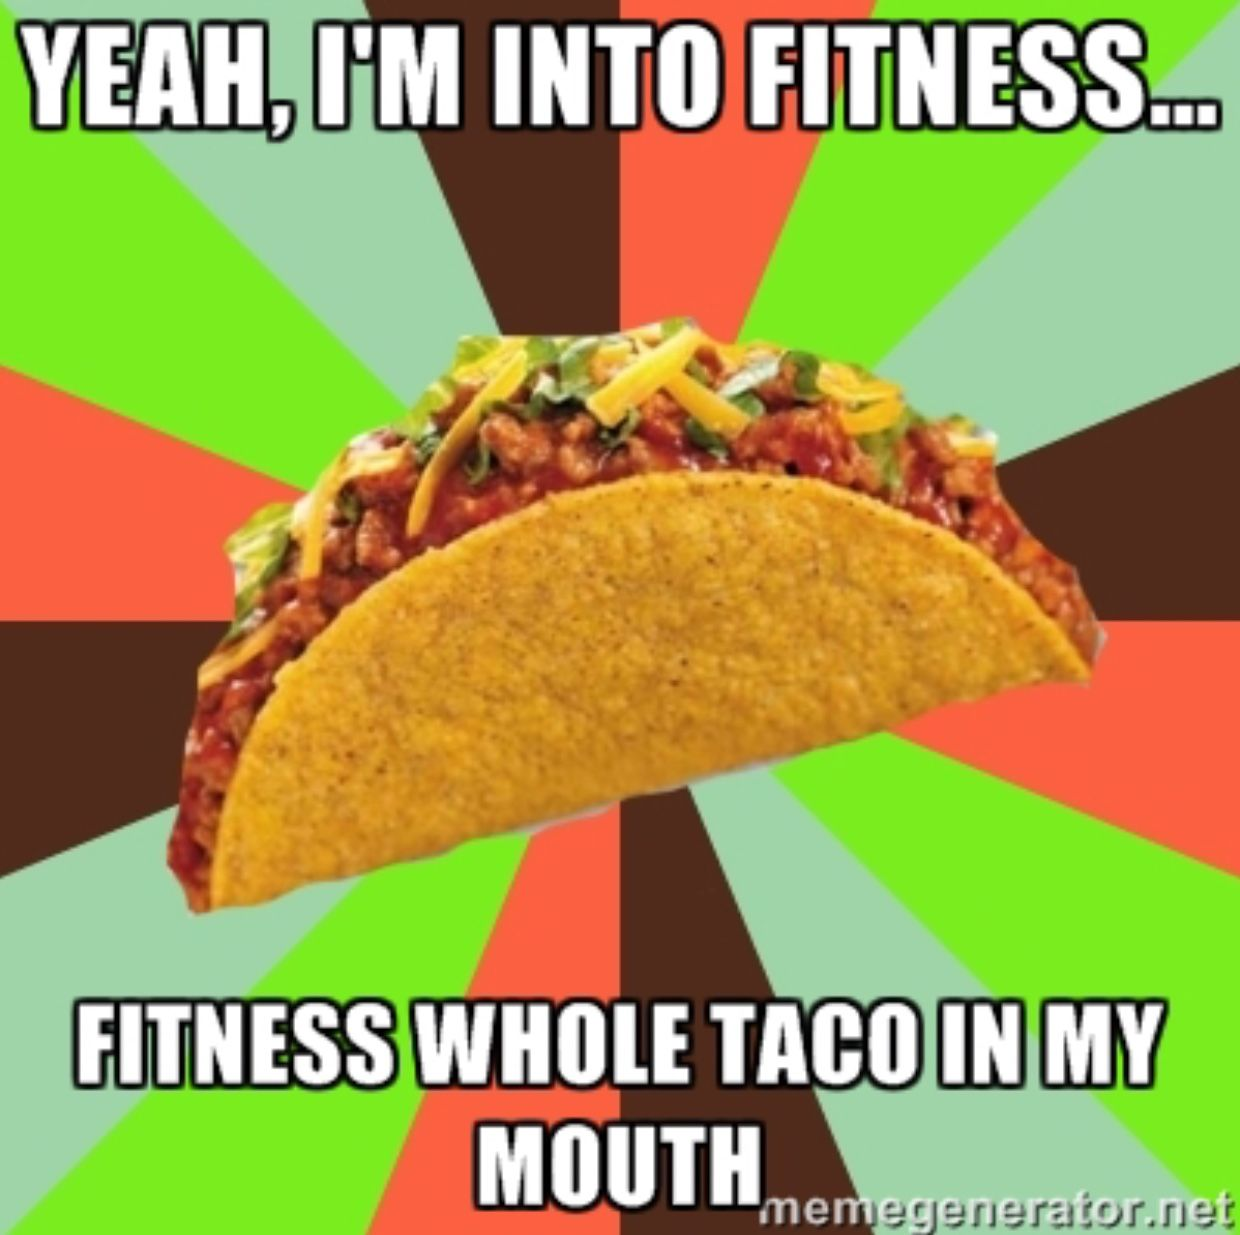 Pin by Holly Scott on Tacos4Life in 2020 Taco humor